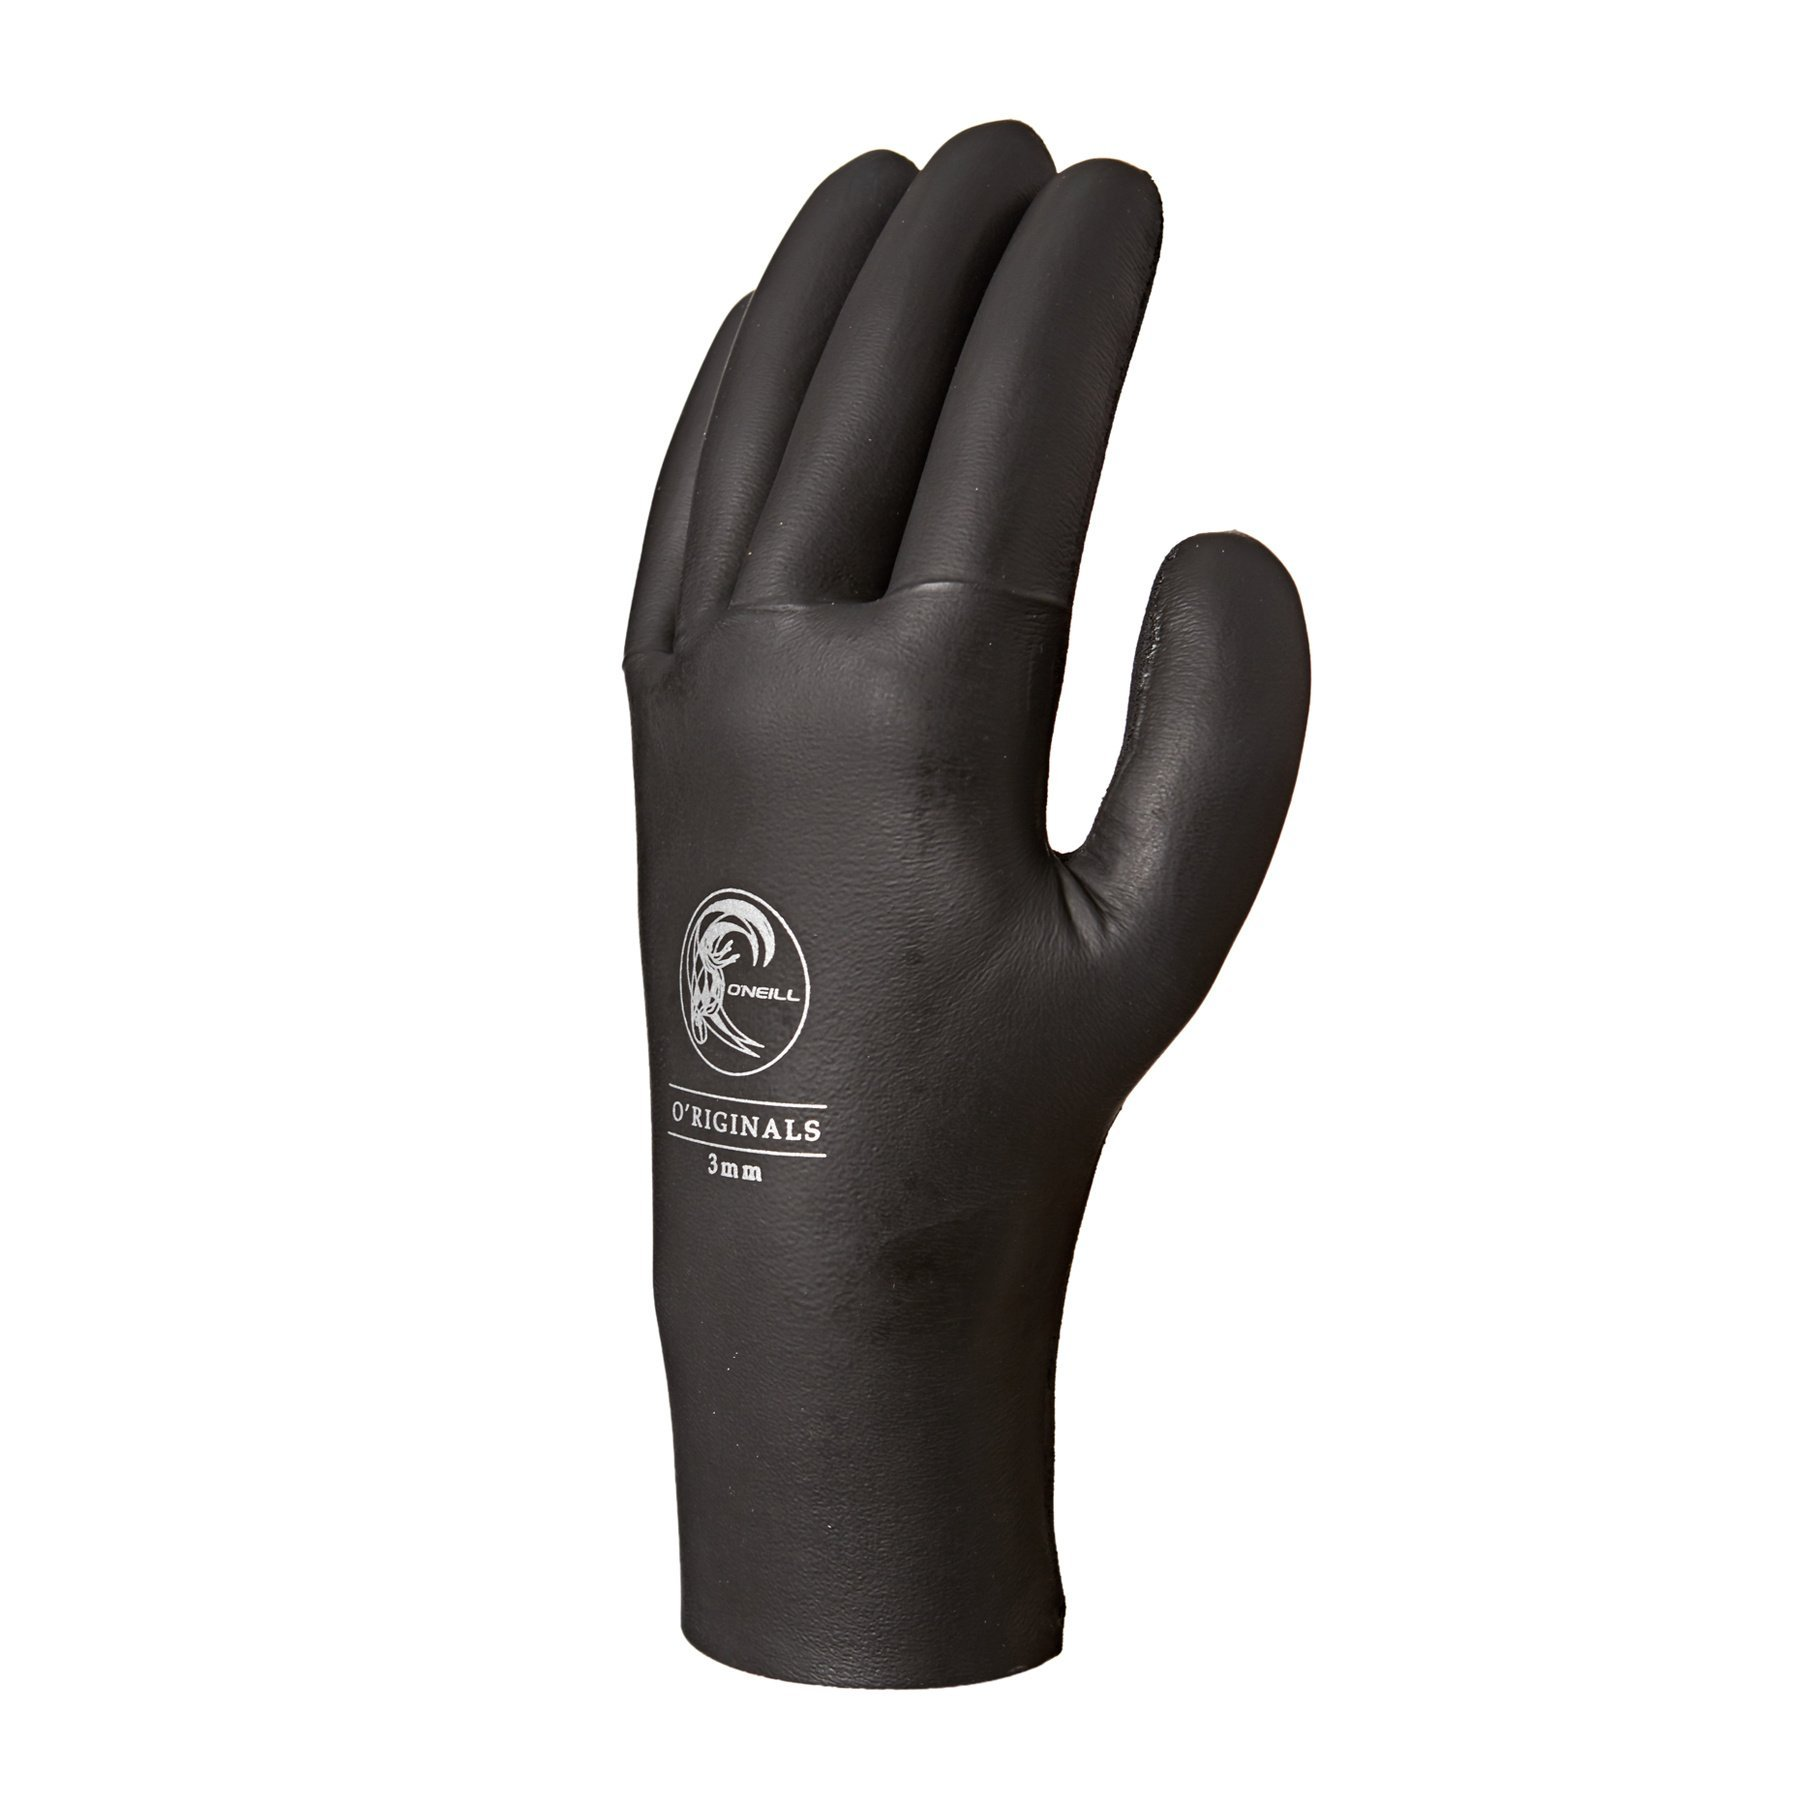 O Neill Originals 3mm 2017 5 Finger Wetsuit Gloves X Large Black